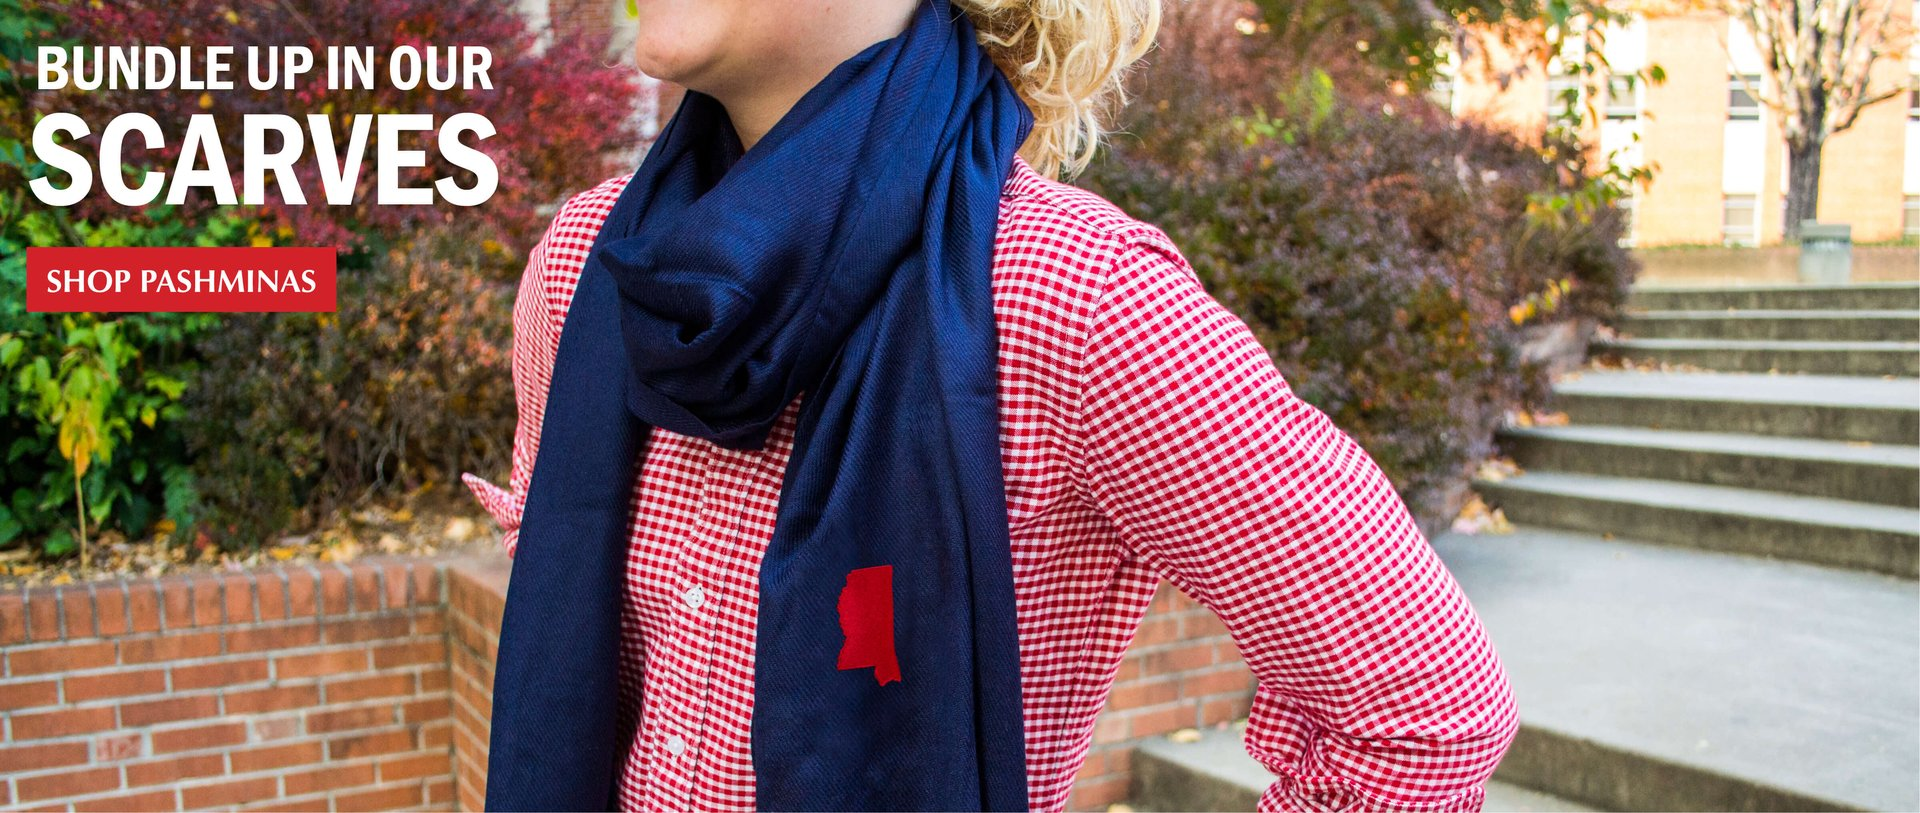 Collegiate and state pride pashmina scarves for women